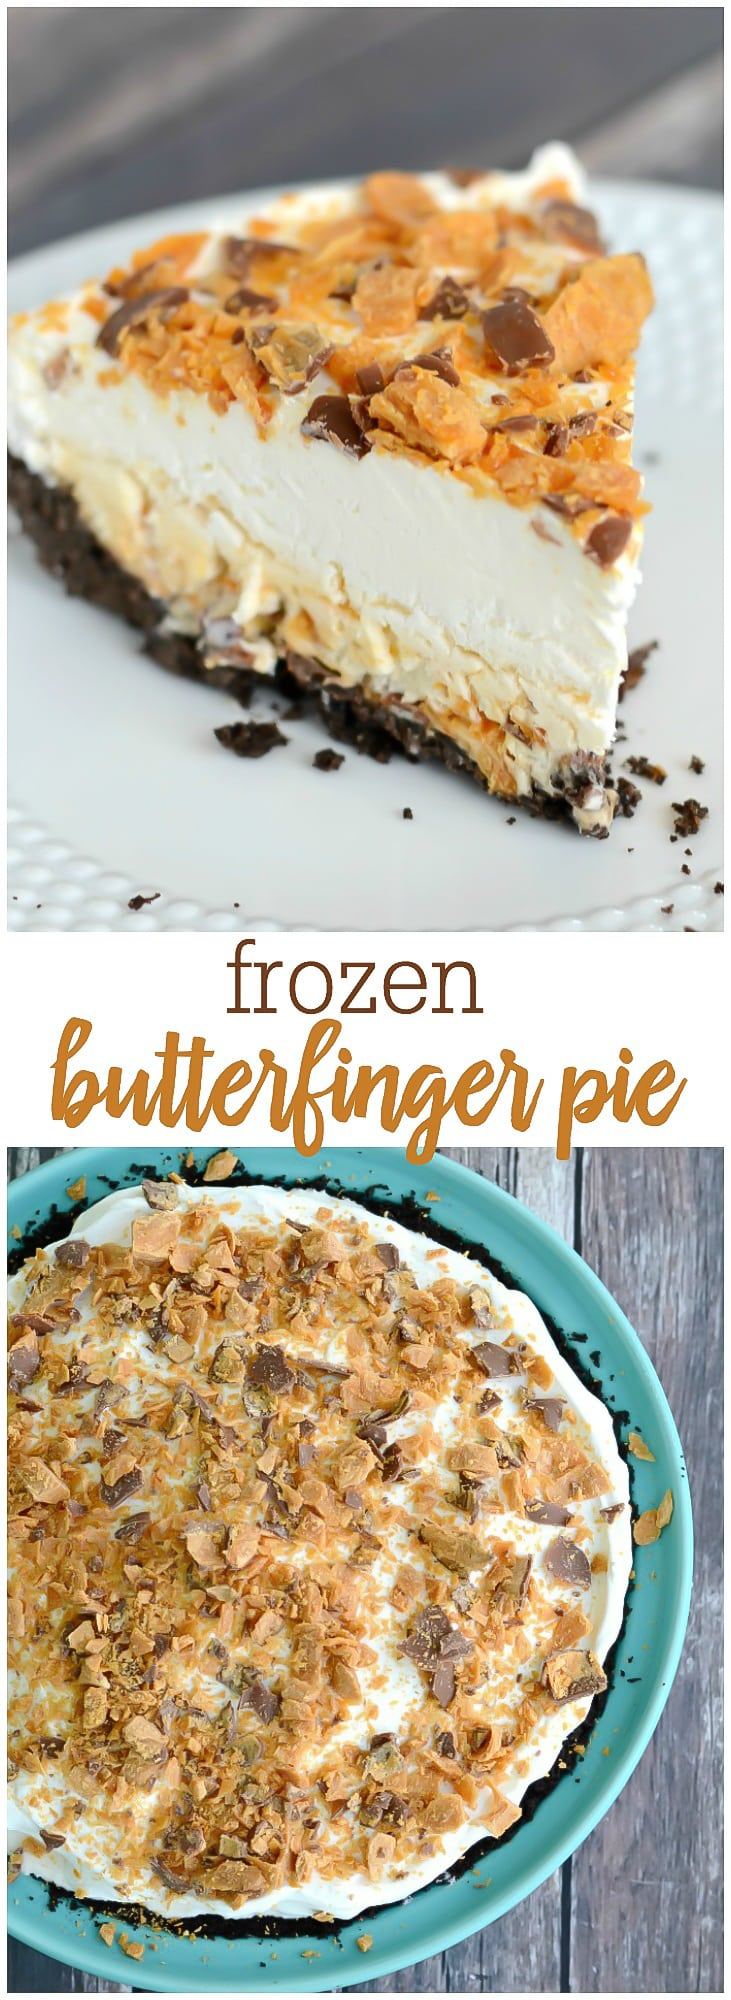 Frozen Butterfinger Pie - With a chocolate crust, a homemade Butterfinger ice cream filling, fluffy topping, and even more Butterfingers on top, every single bite of this pie is unbelievably delicious!